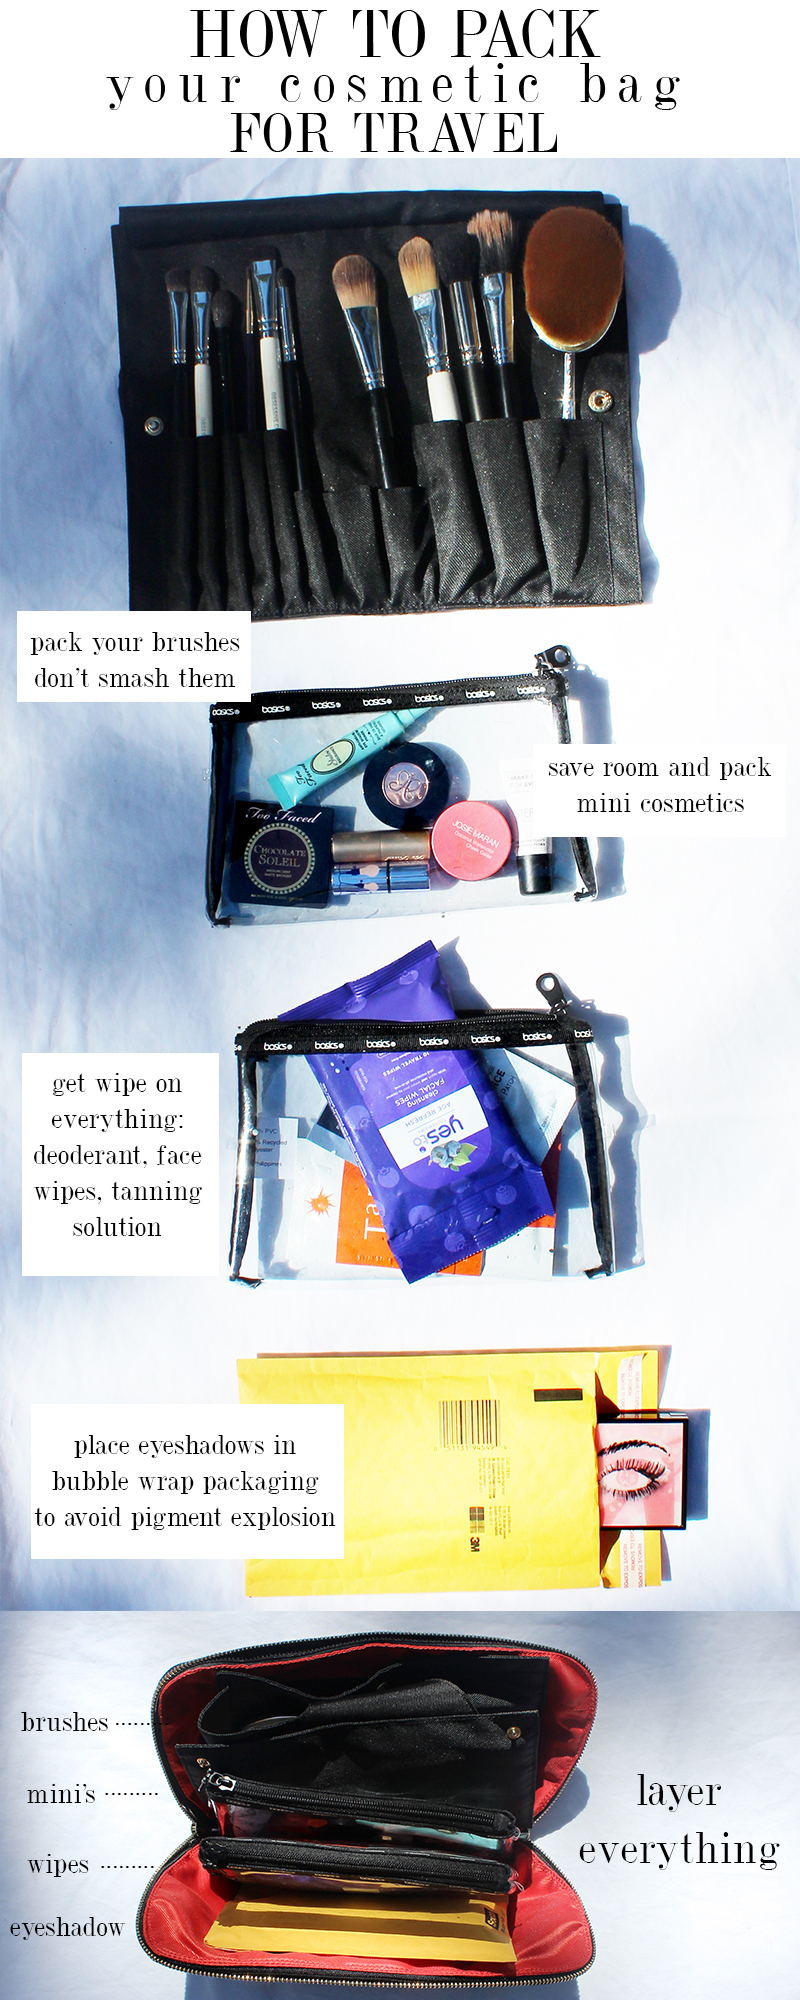 how to pack your cosmetic bag for travel